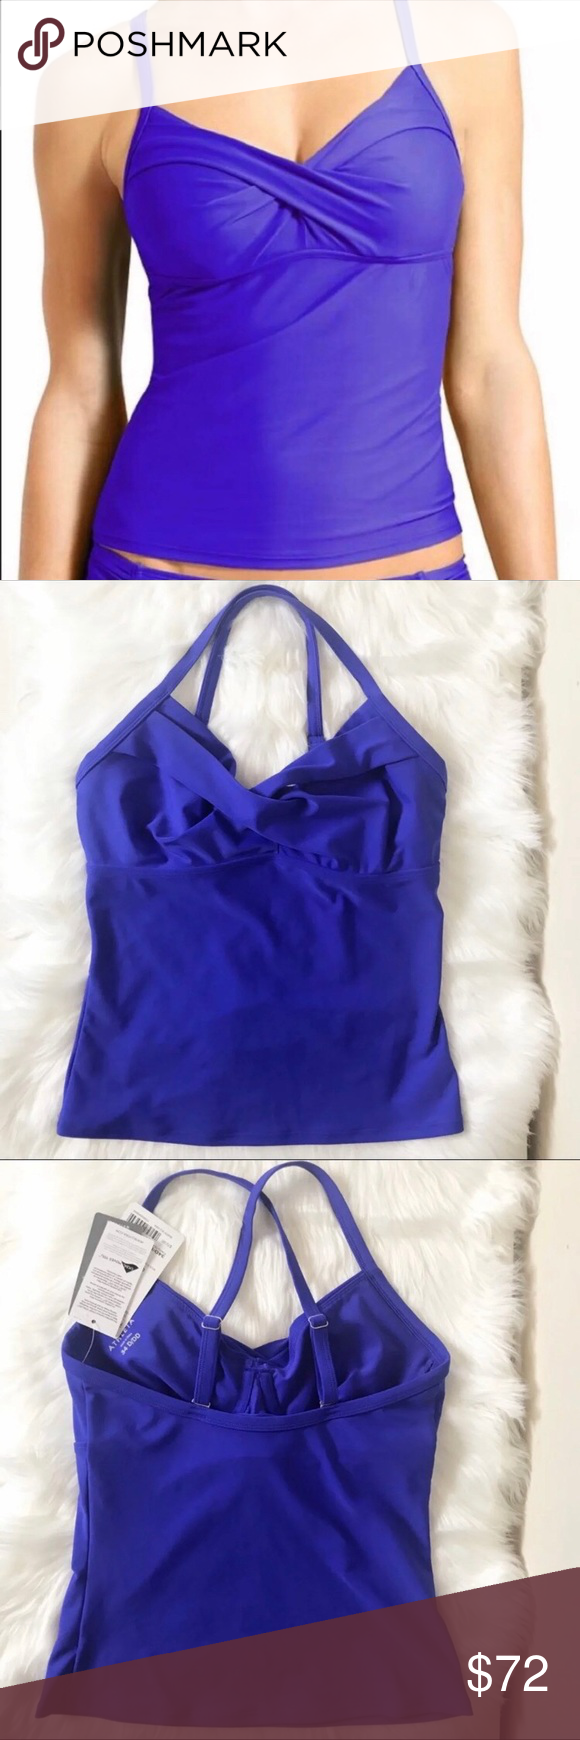 b147118465874 Athleta Twister Tankini Size 34 D/ DD NWT Athleta blue Twister Tankini. •  New with tags. • Size 34 D/DD • Made from Lycra spandex • 50+ SPF • Top  only ...